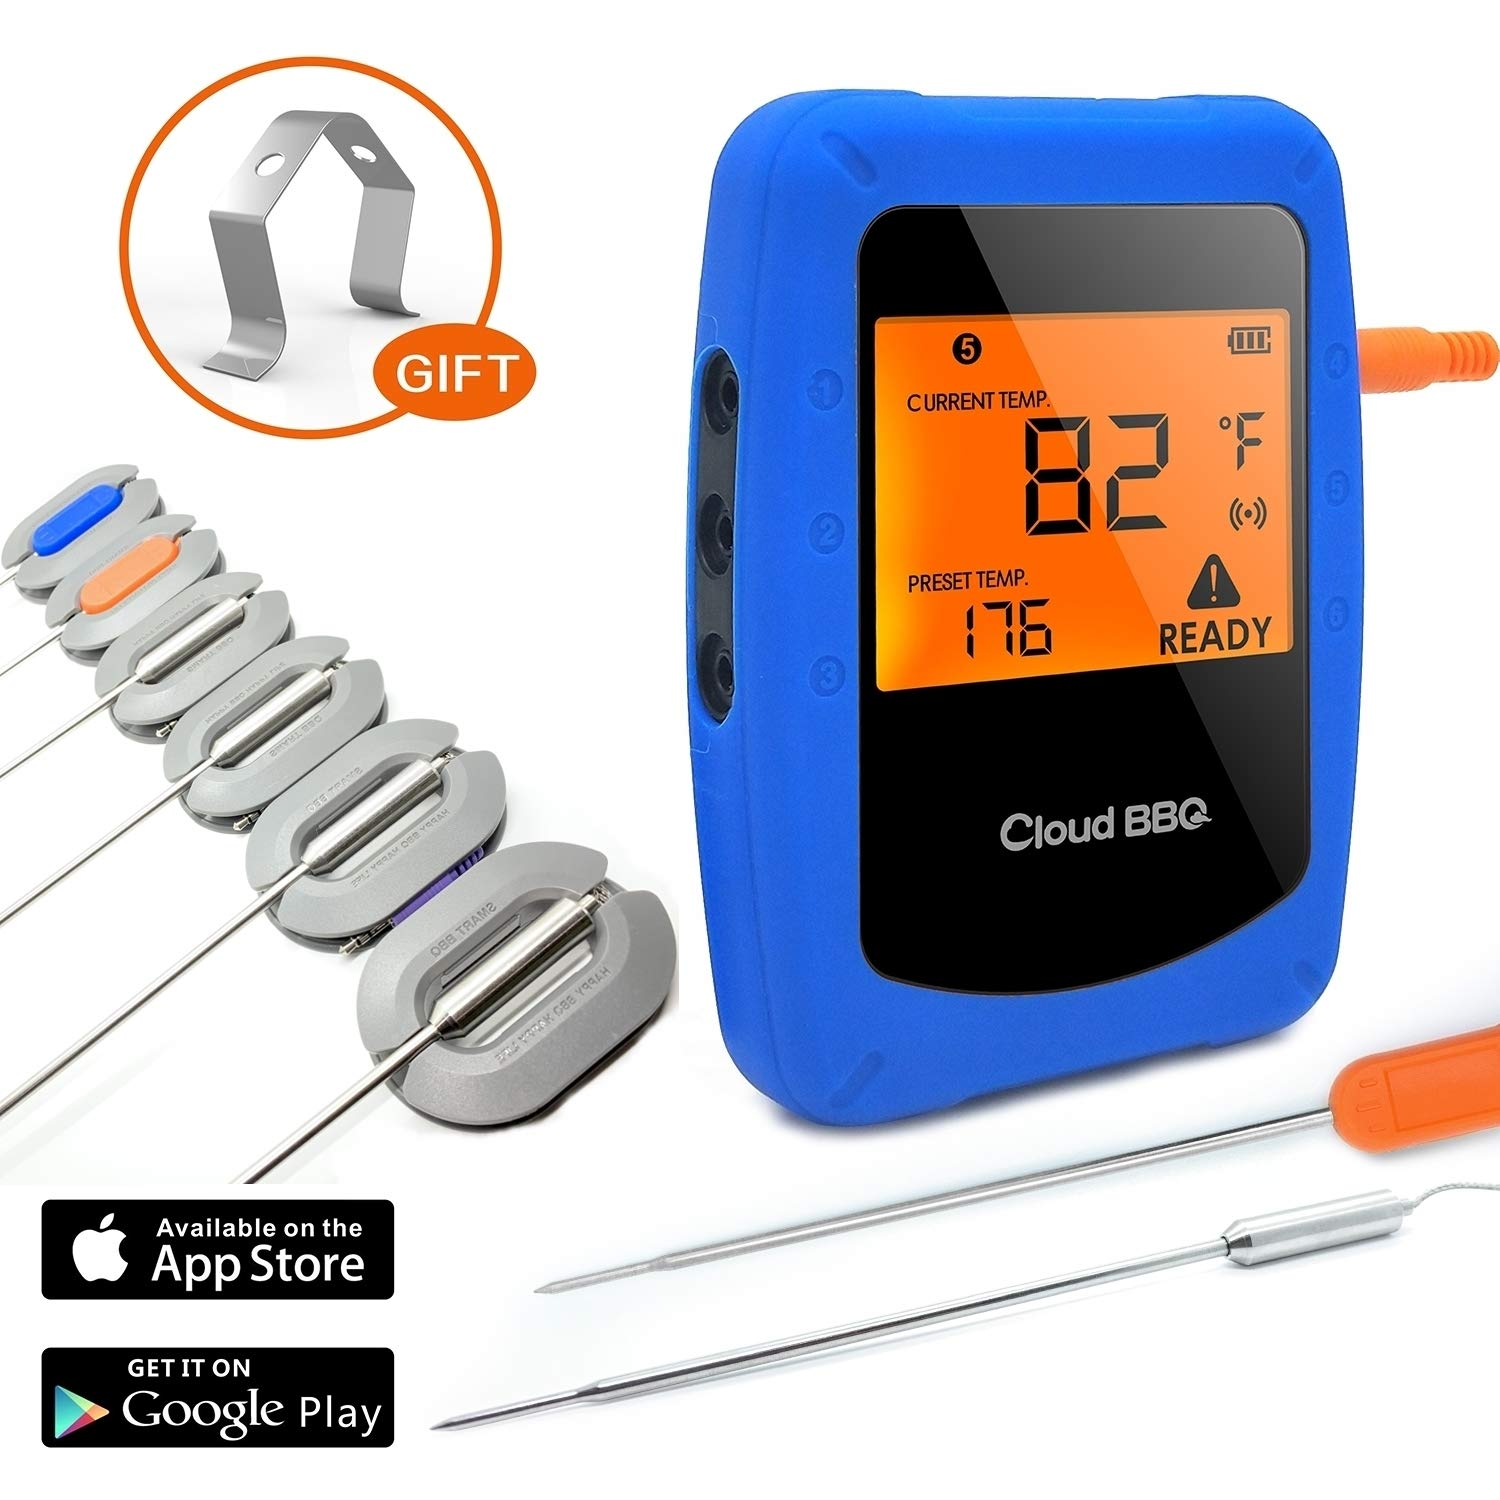 BossBee Wireless Bluetooth Meat Thermometer-Digital Thermometer for Cooking and BBQ |6 Stainless Steel Probes for Outdoor/Indoor Safe Oven Grill Kitchen Sensors |Smart Monitor for Reading Temperature